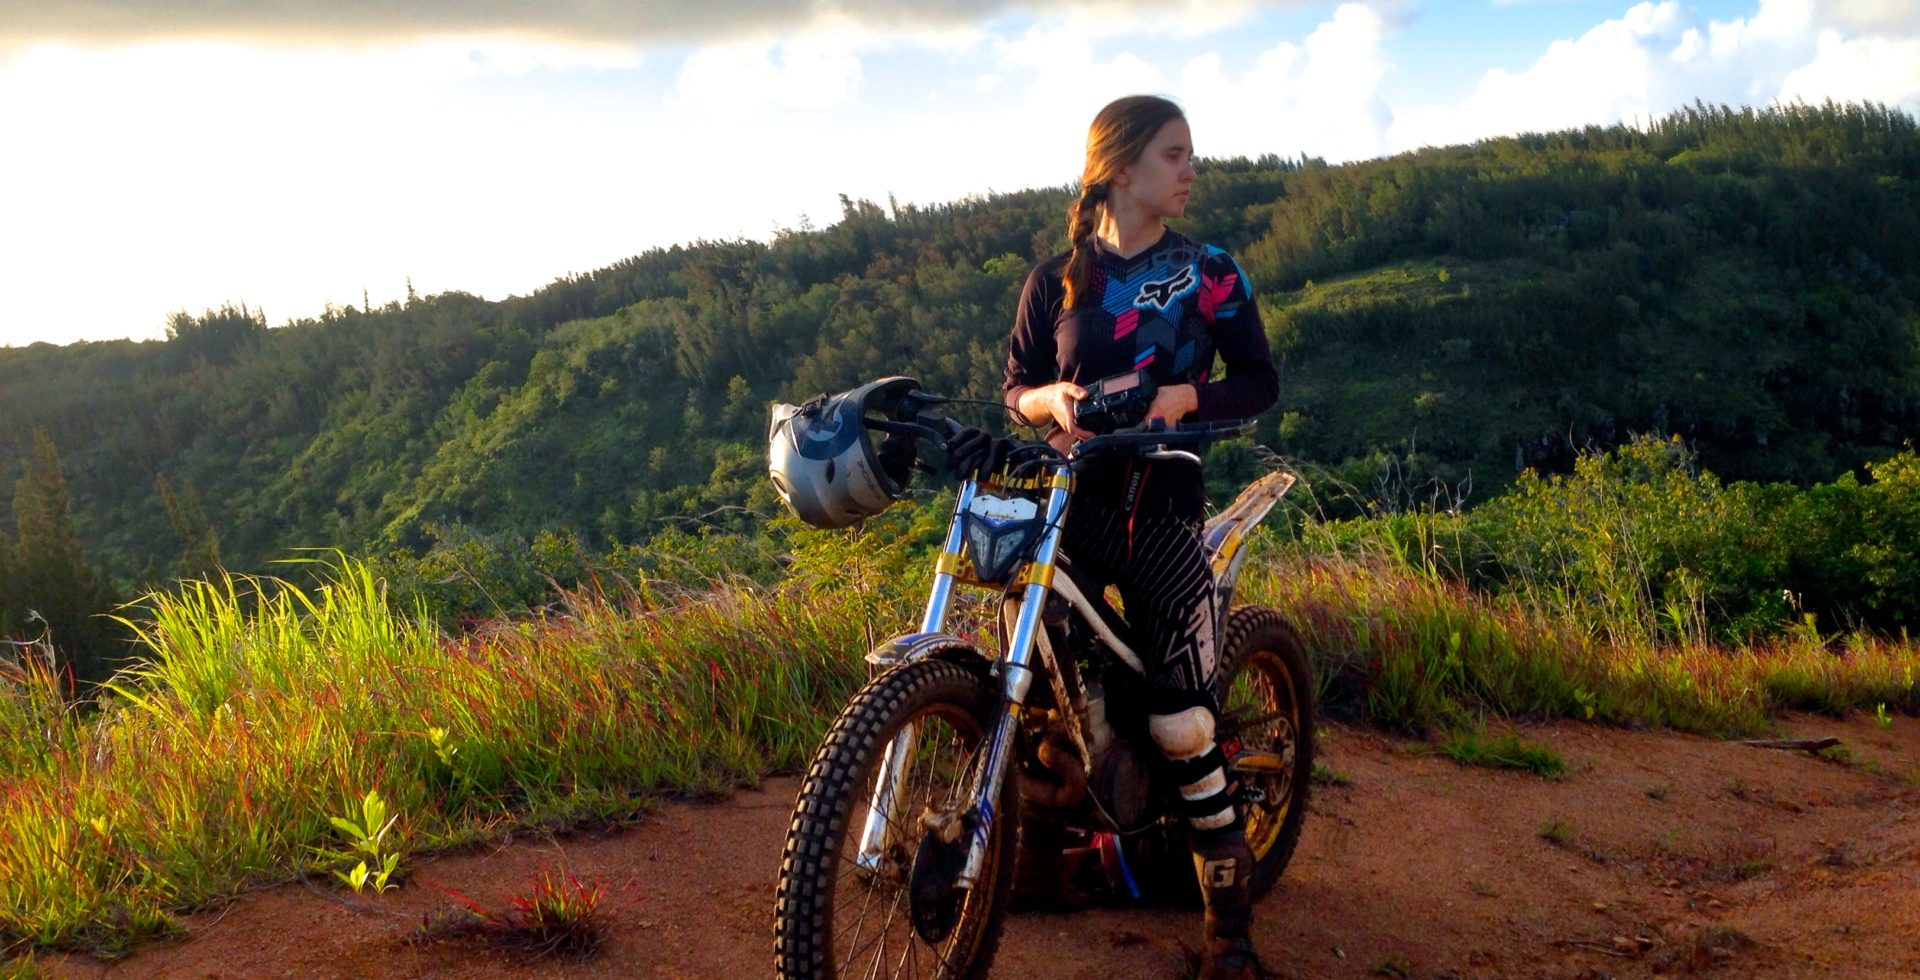 Dirt biking in Hawaii